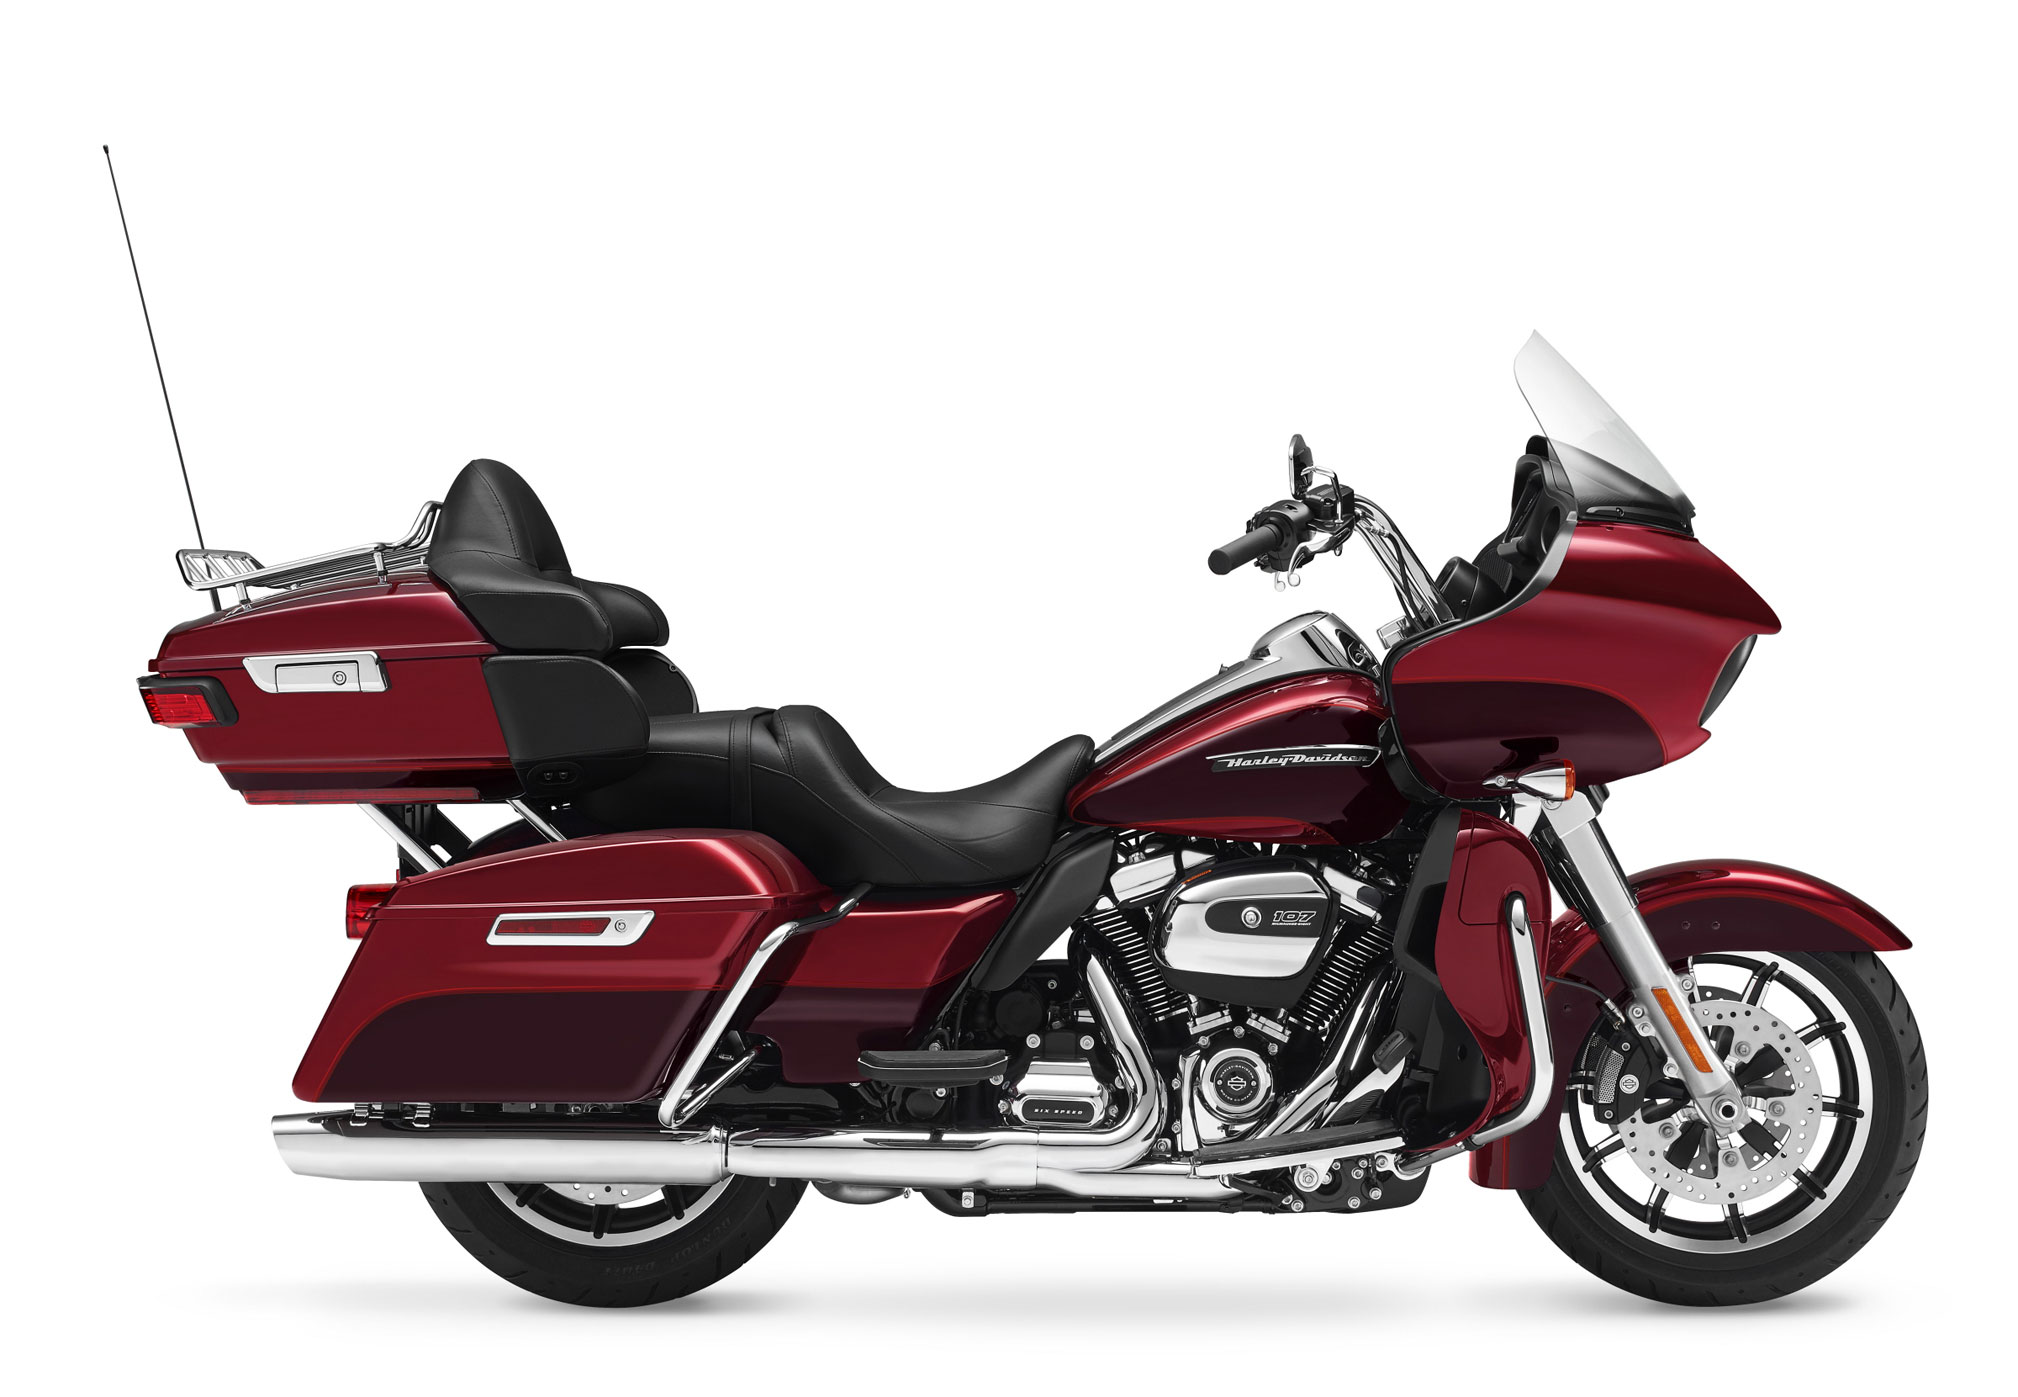 2018 Harley-Davidson Road Glide Ultra Review • TotalMotorcycle